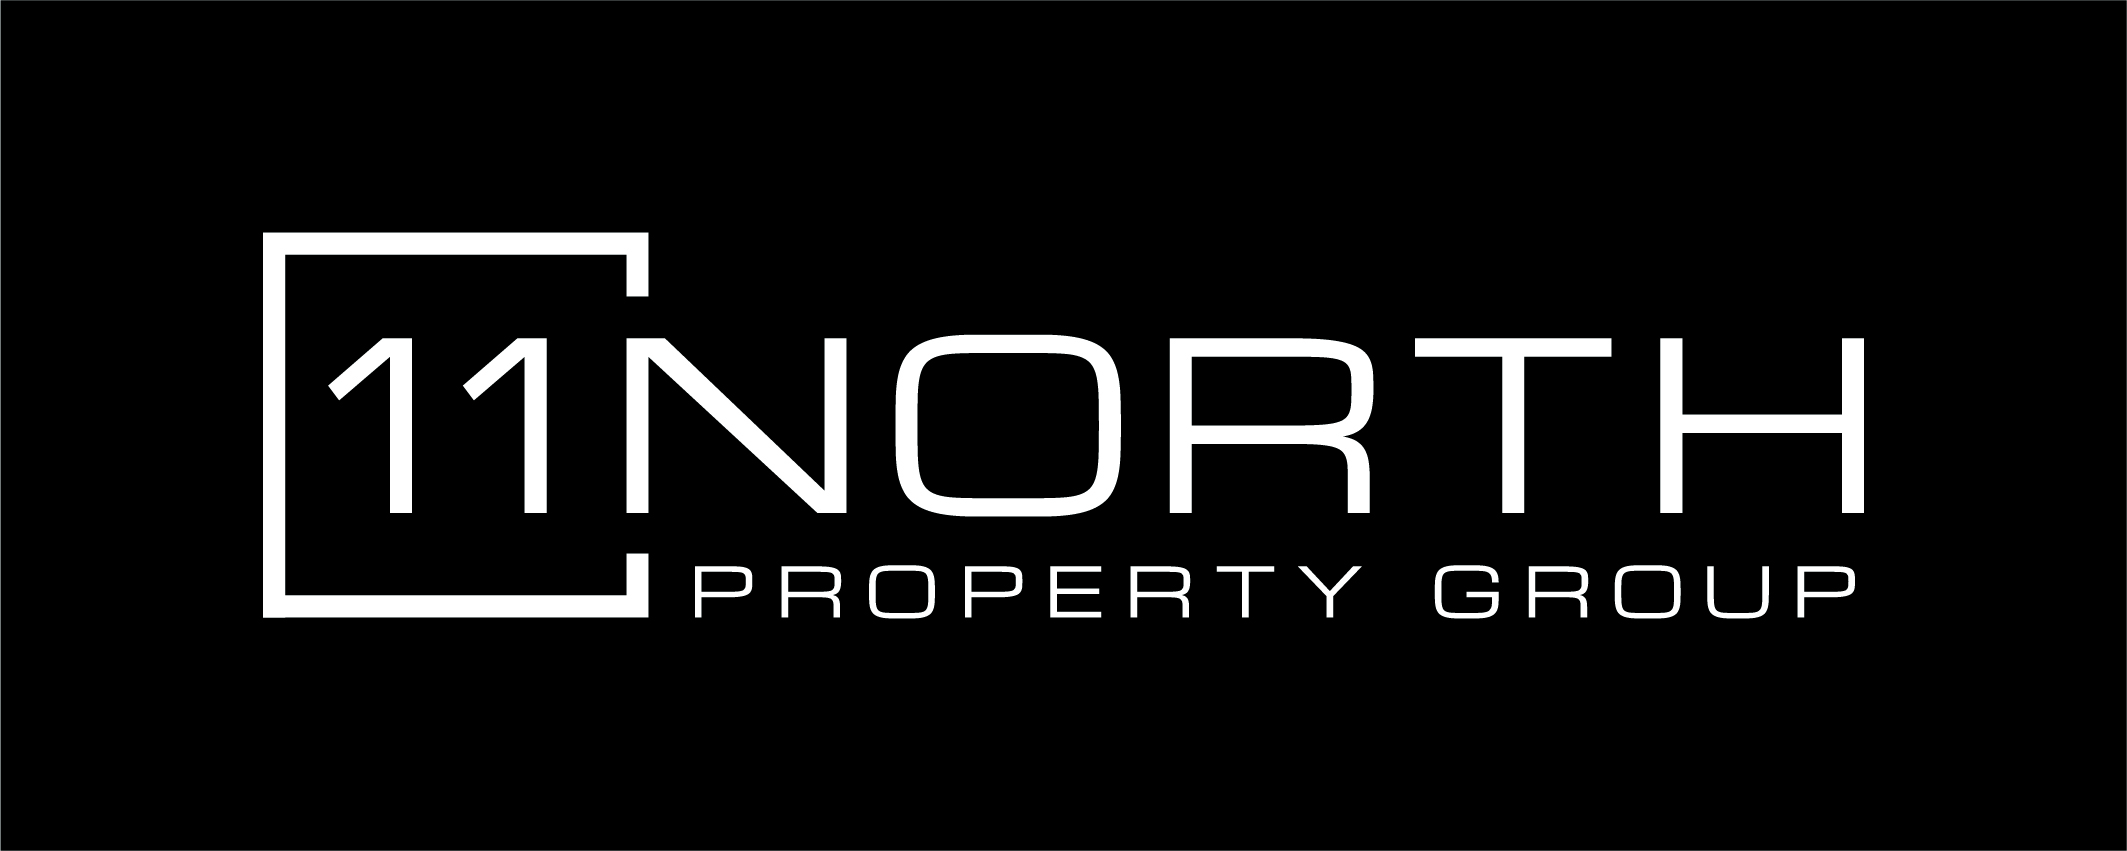 11 North Property Group